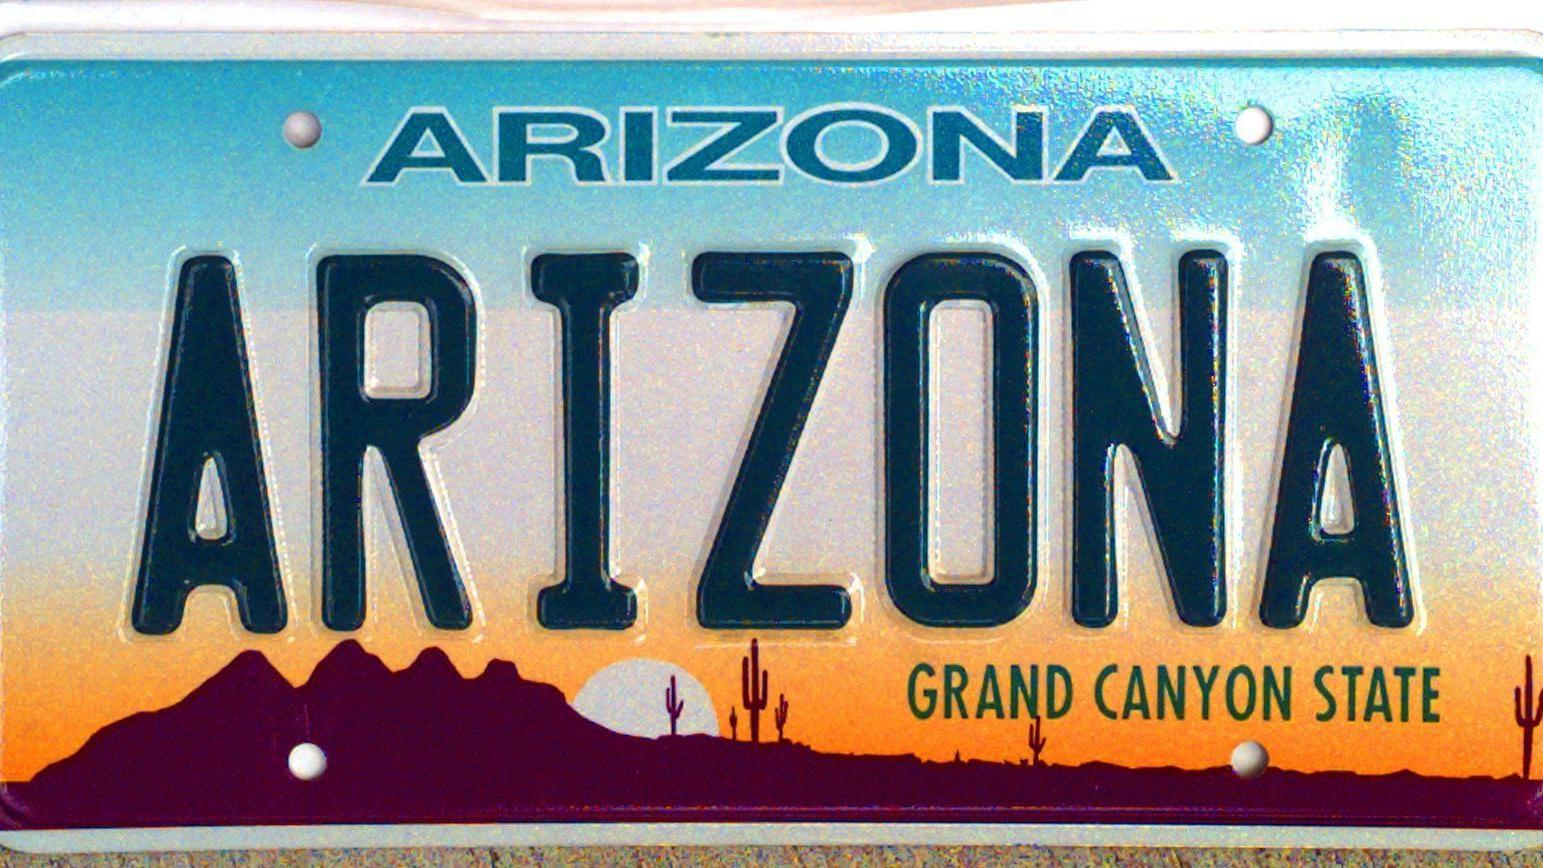 Find License Plate Owner >> Arizona outlaws plastic covers, films that obscure license plates | Local news | tucson.com